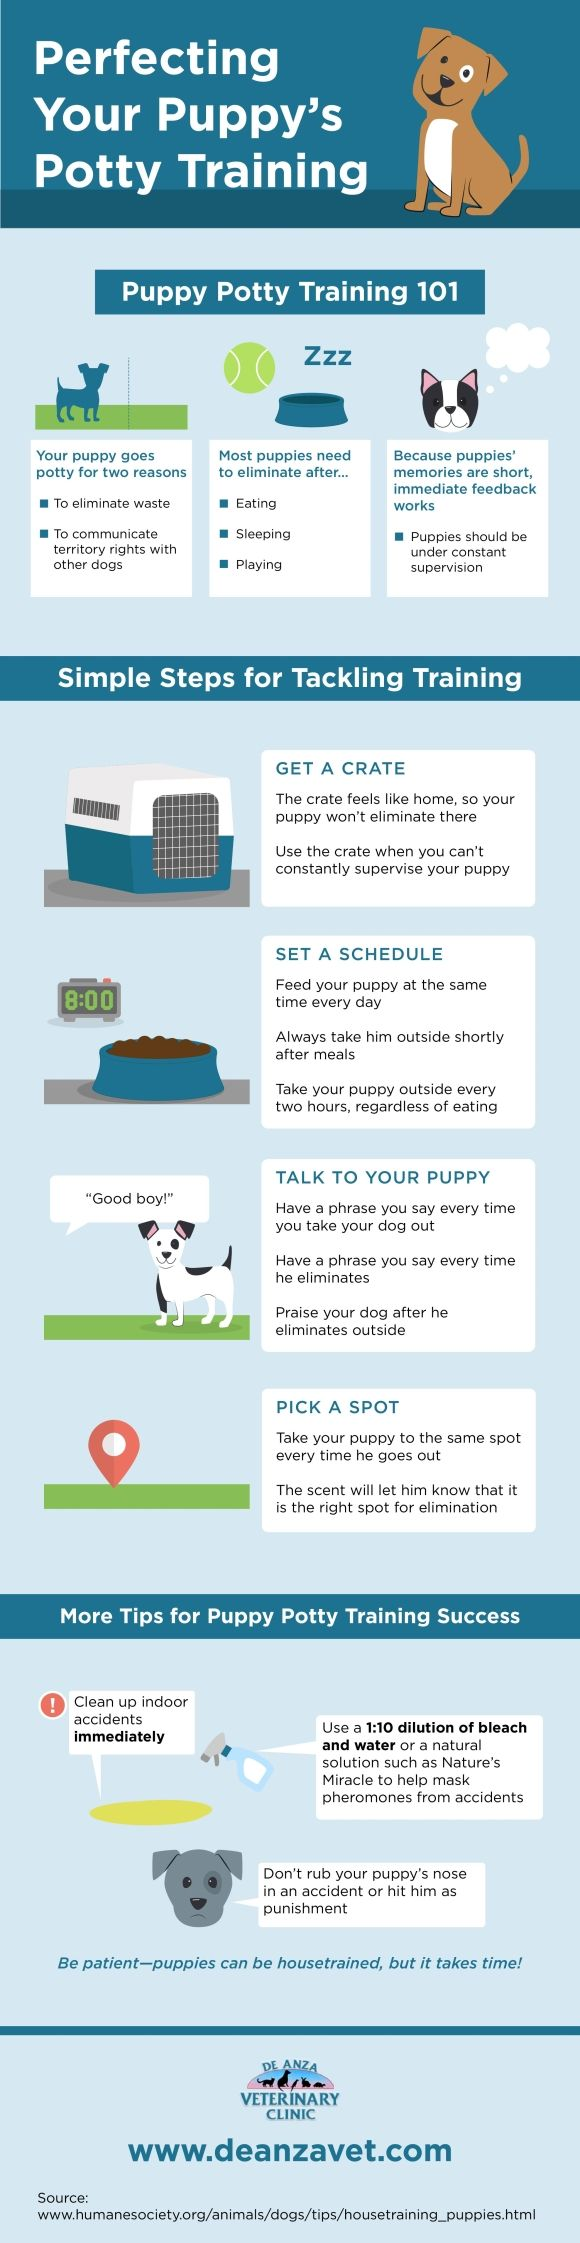 Do you know how to potty train your puppy? Start by setting a feeding schedule! Click over to this San Jose animal hospital infographic to get more tips that will help you potty train your furry friend.